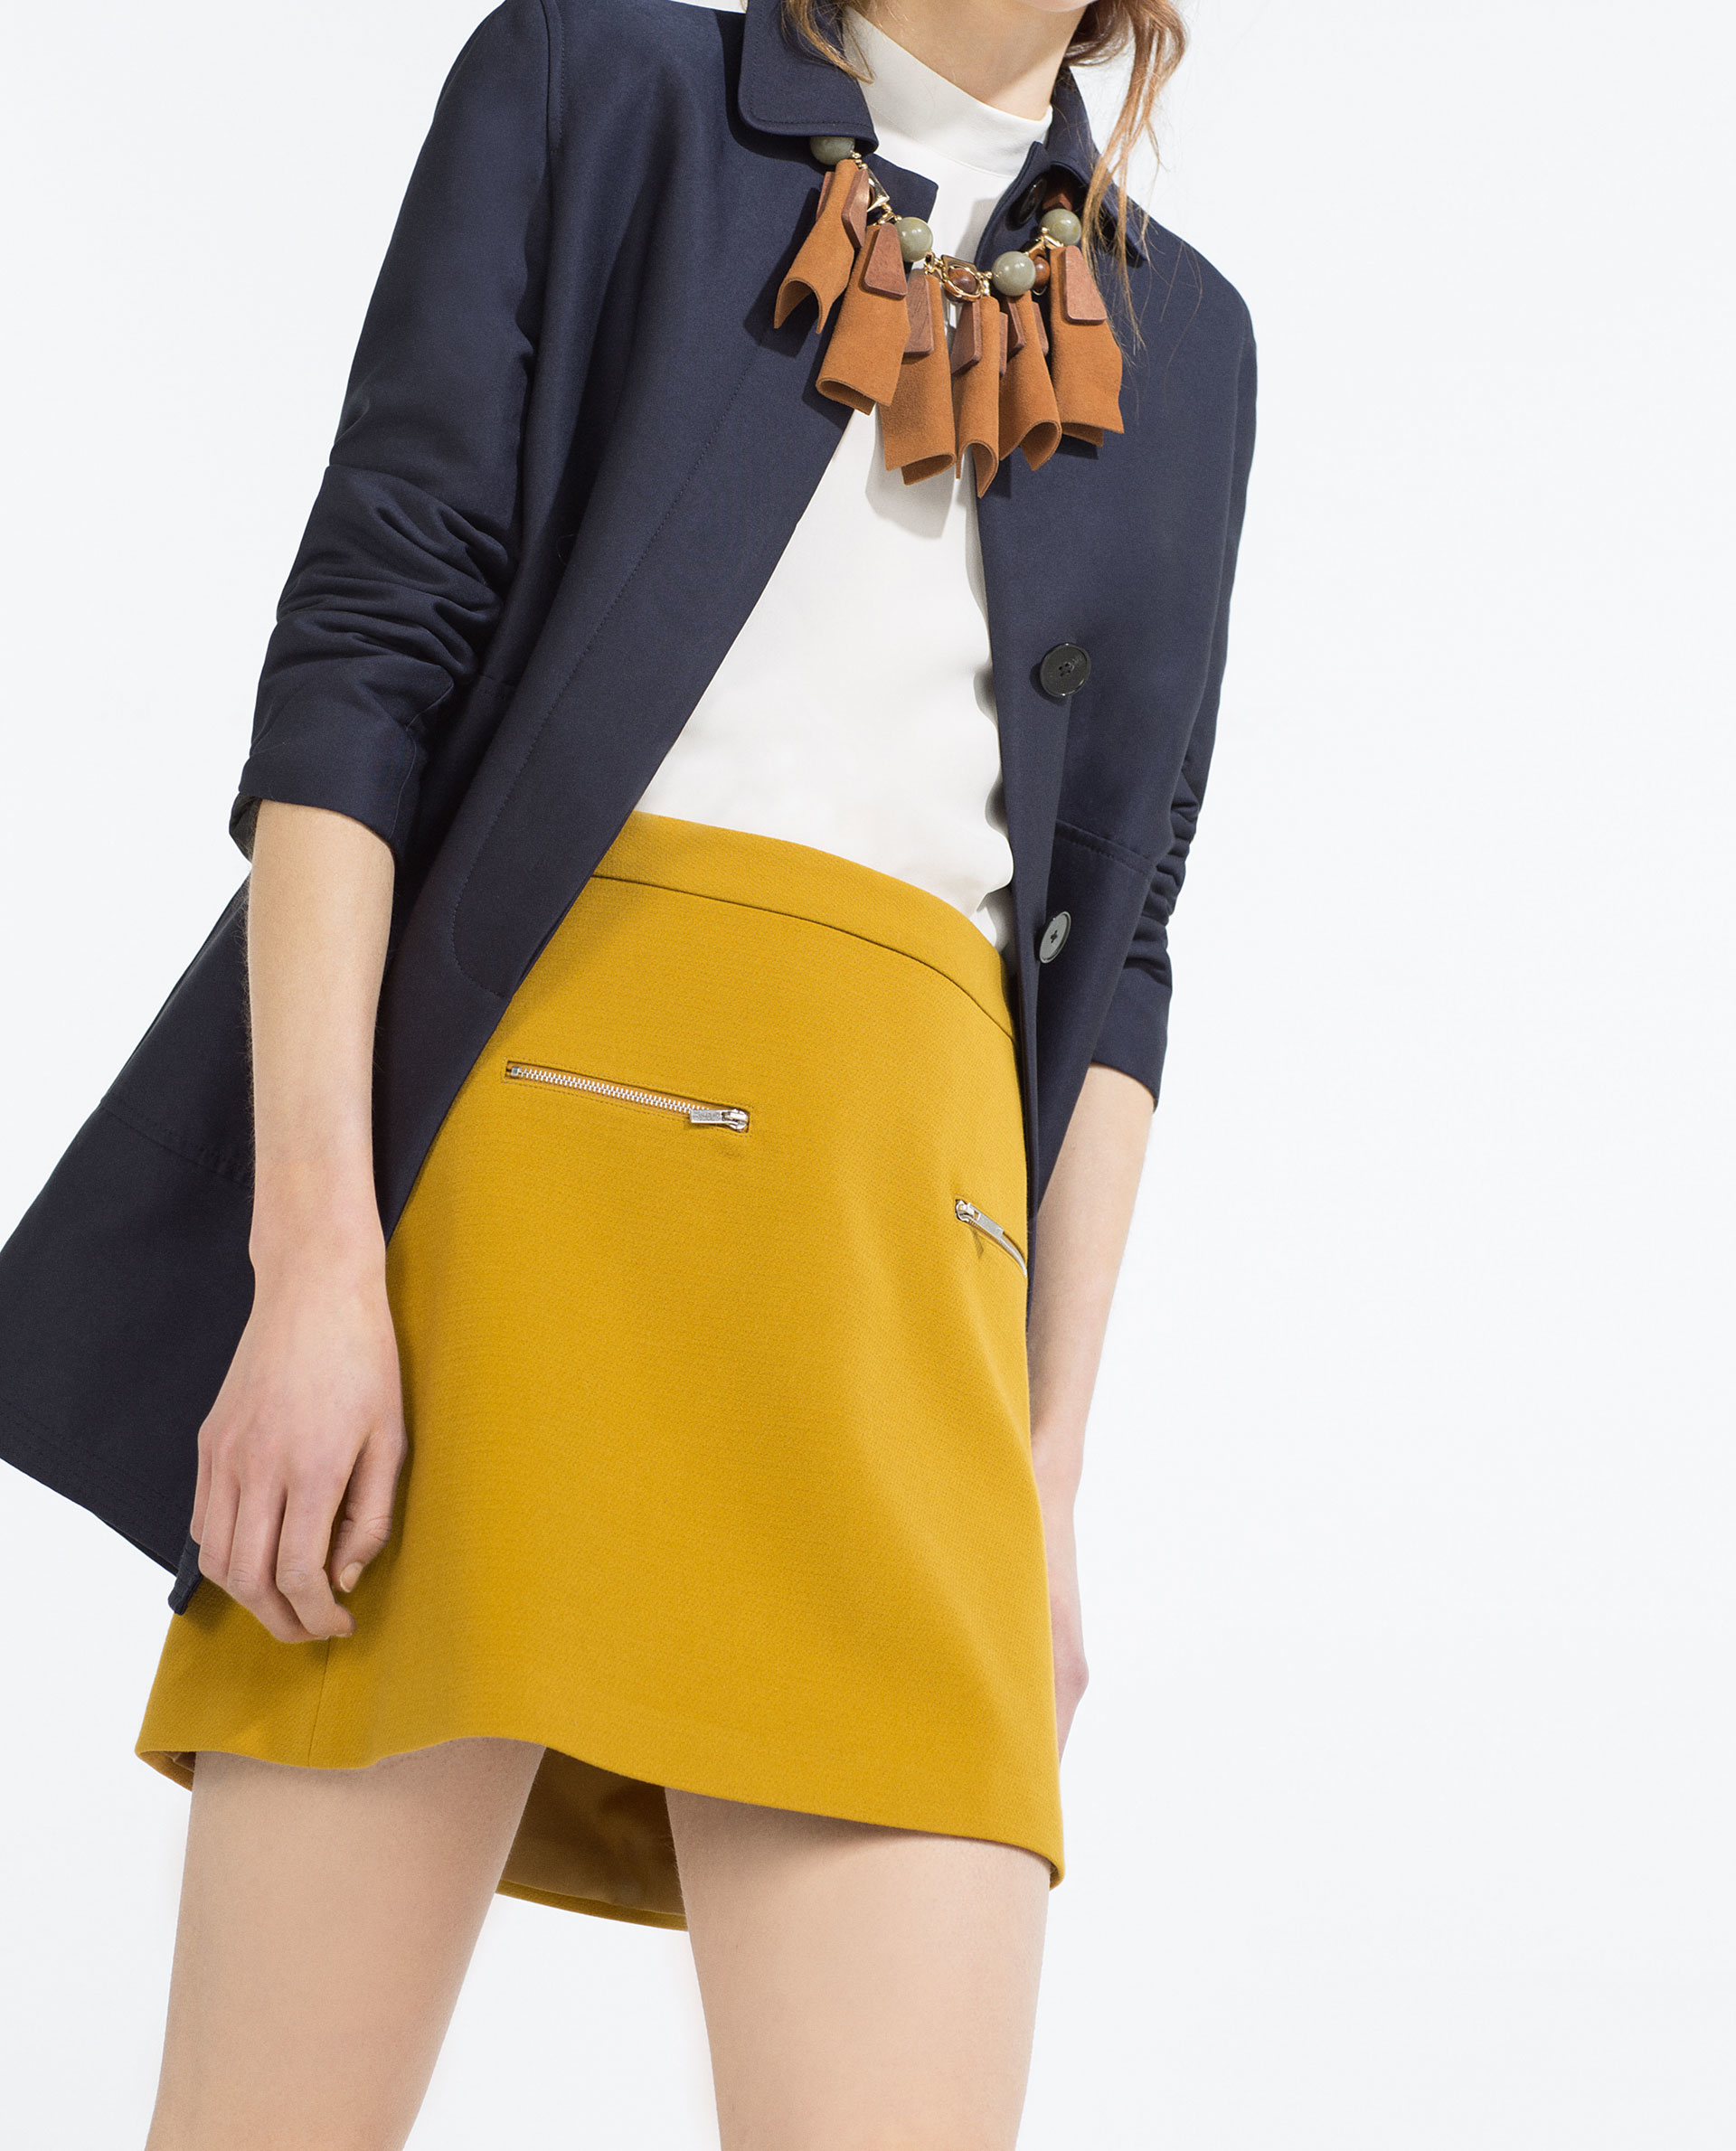 Zara A-line Skirt in Yellow | Lyst